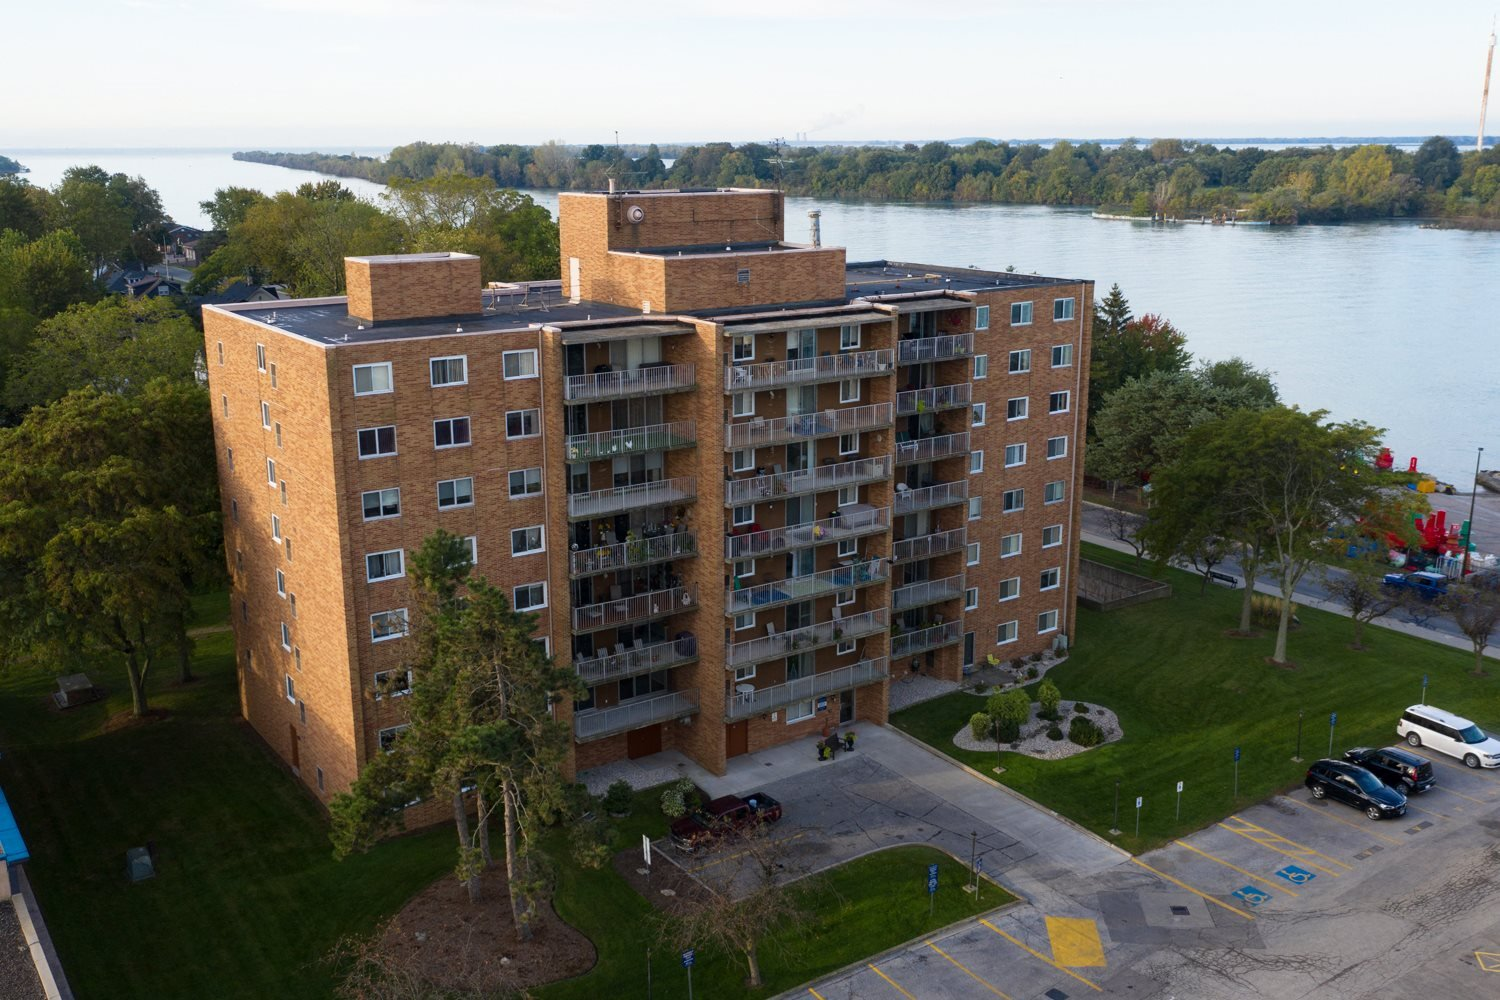 Dalhousie Place exterior image of building with view of the water in Amherstburg, ON